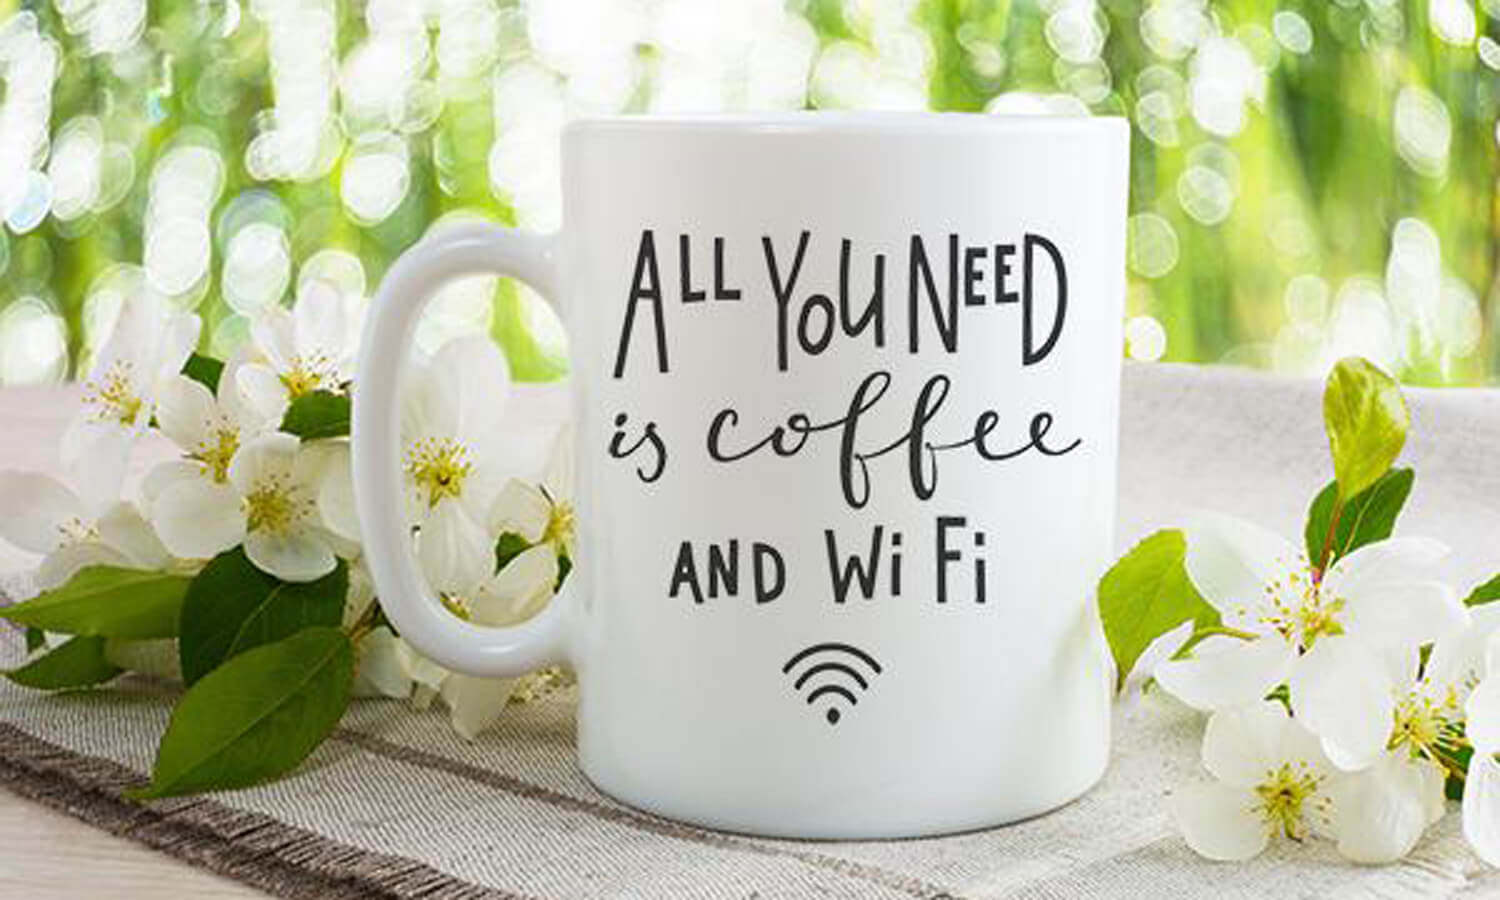 all-you-need-is-coffee-and-wifi-copy